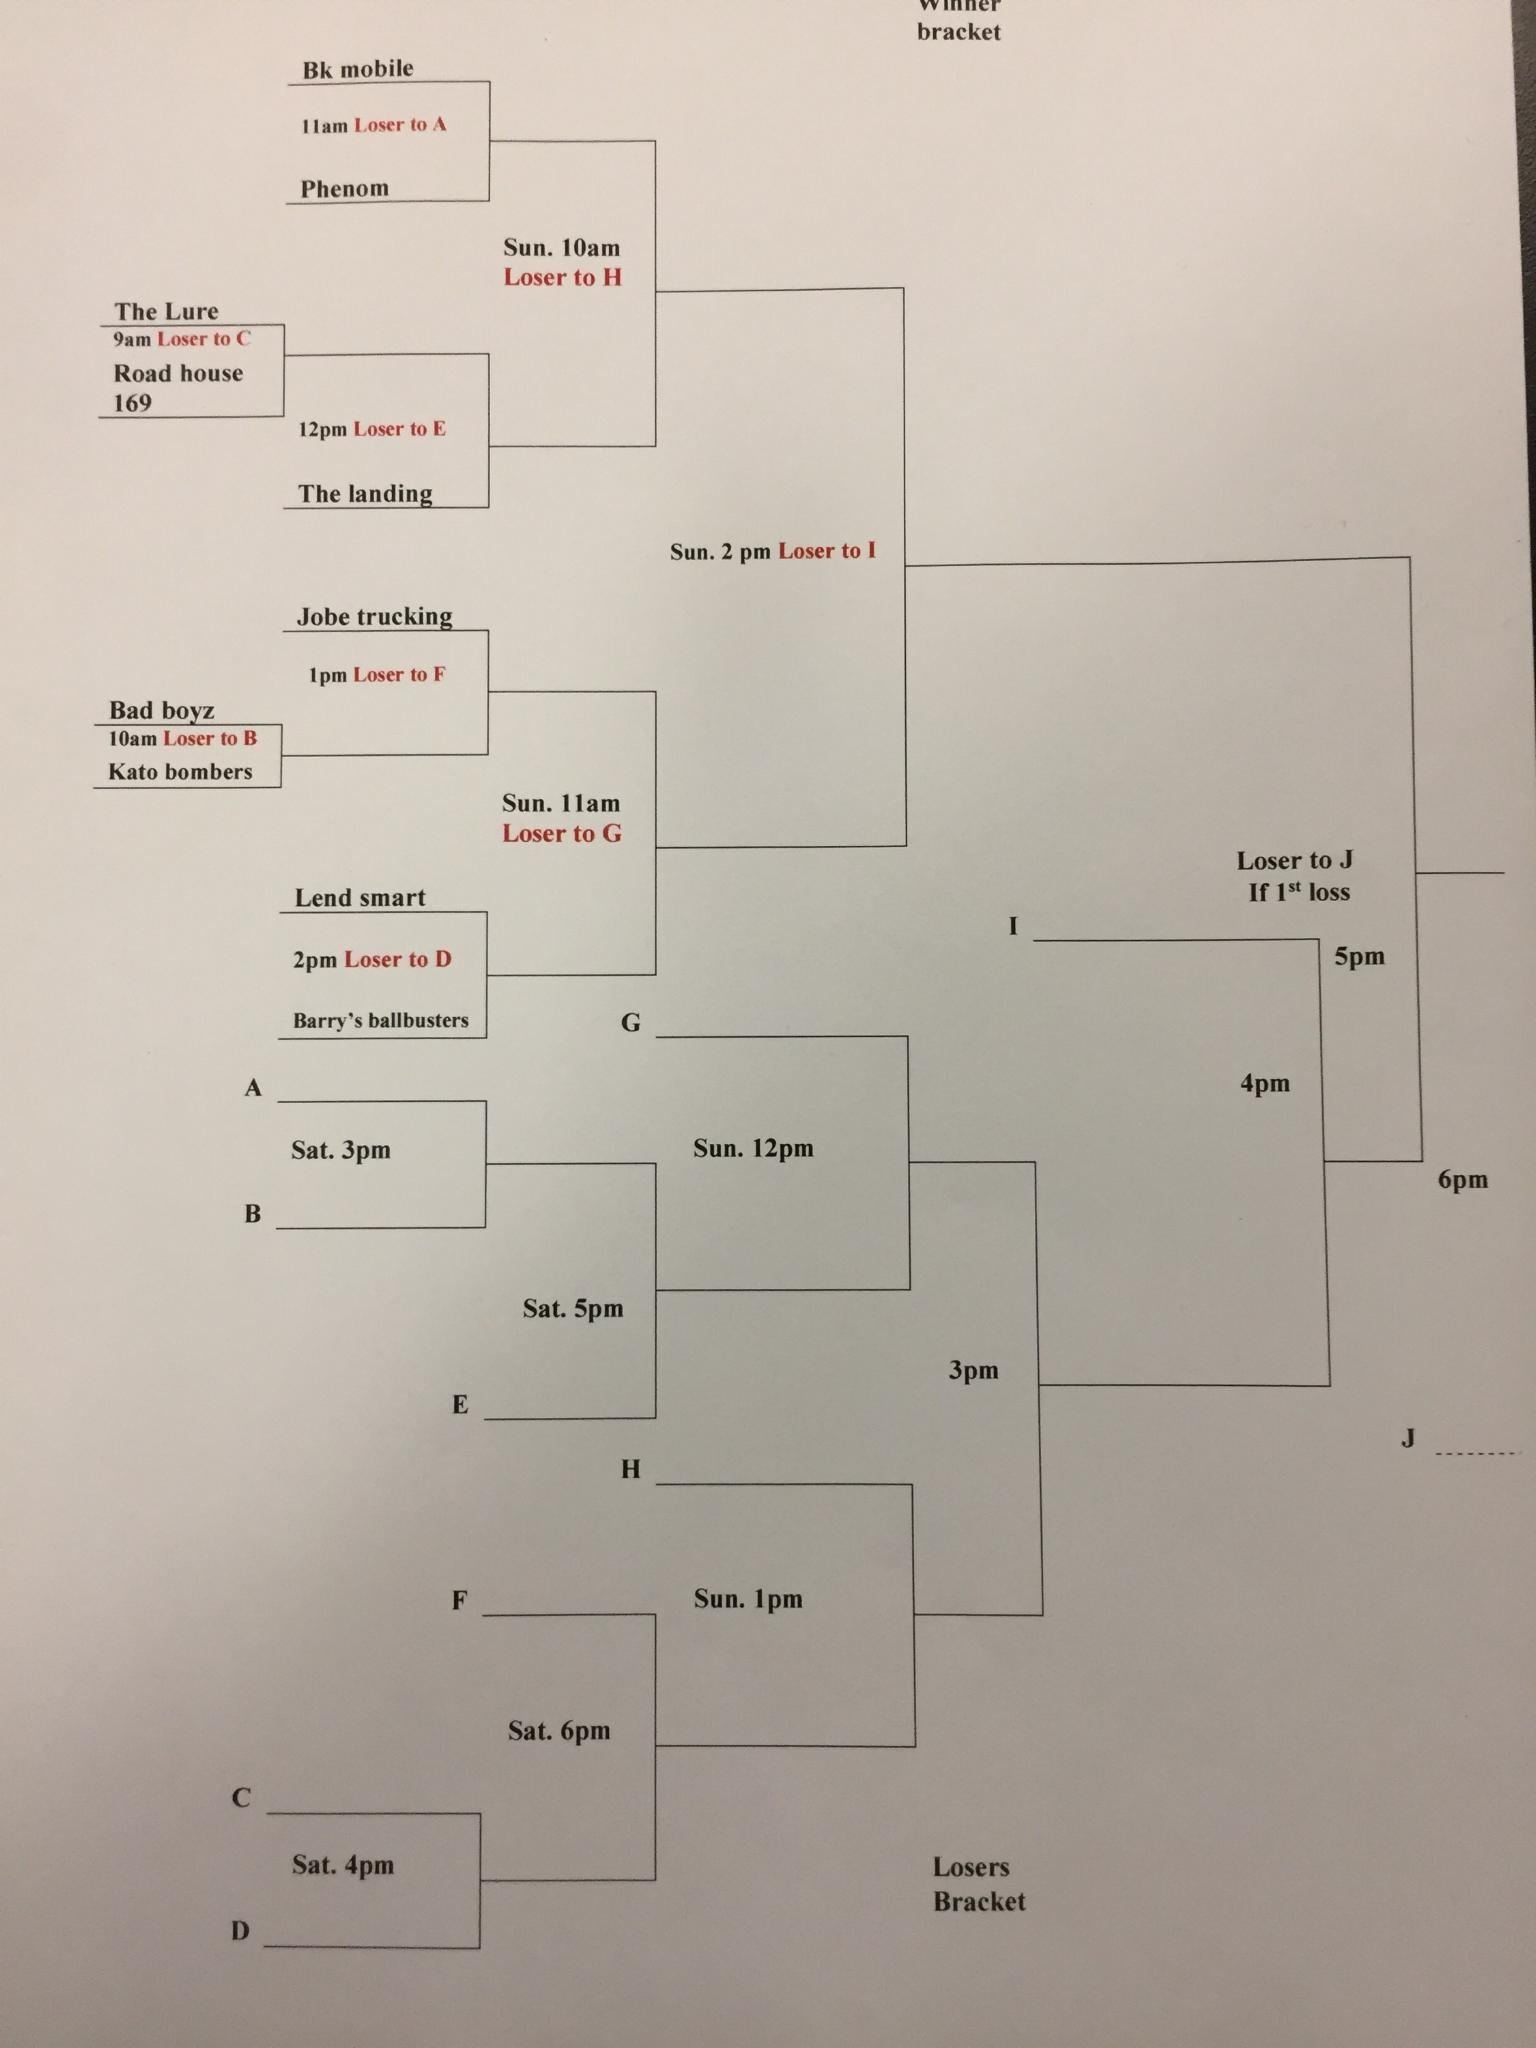 Tournament tree for softball